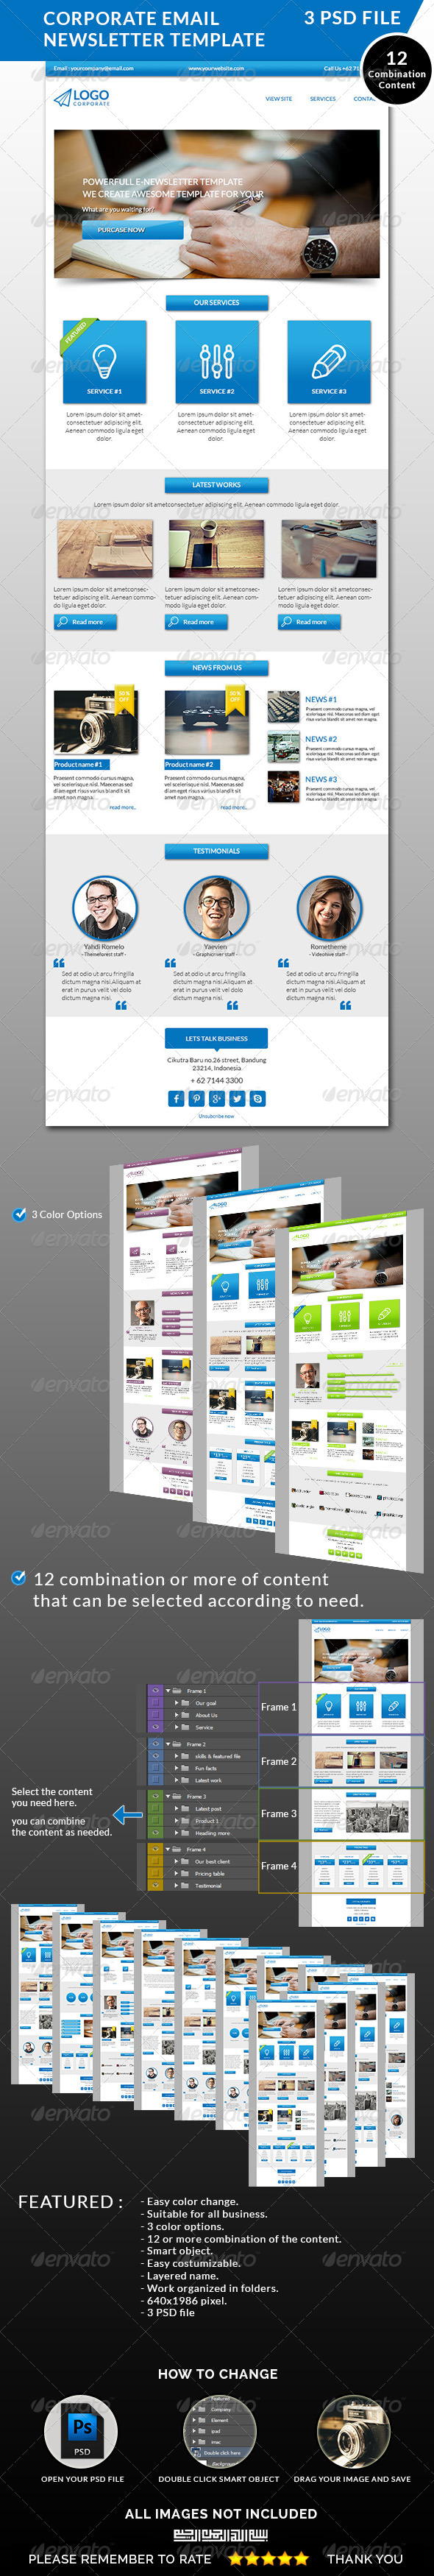 GraphicRiver Corporate Email Newsletter Template 8510916